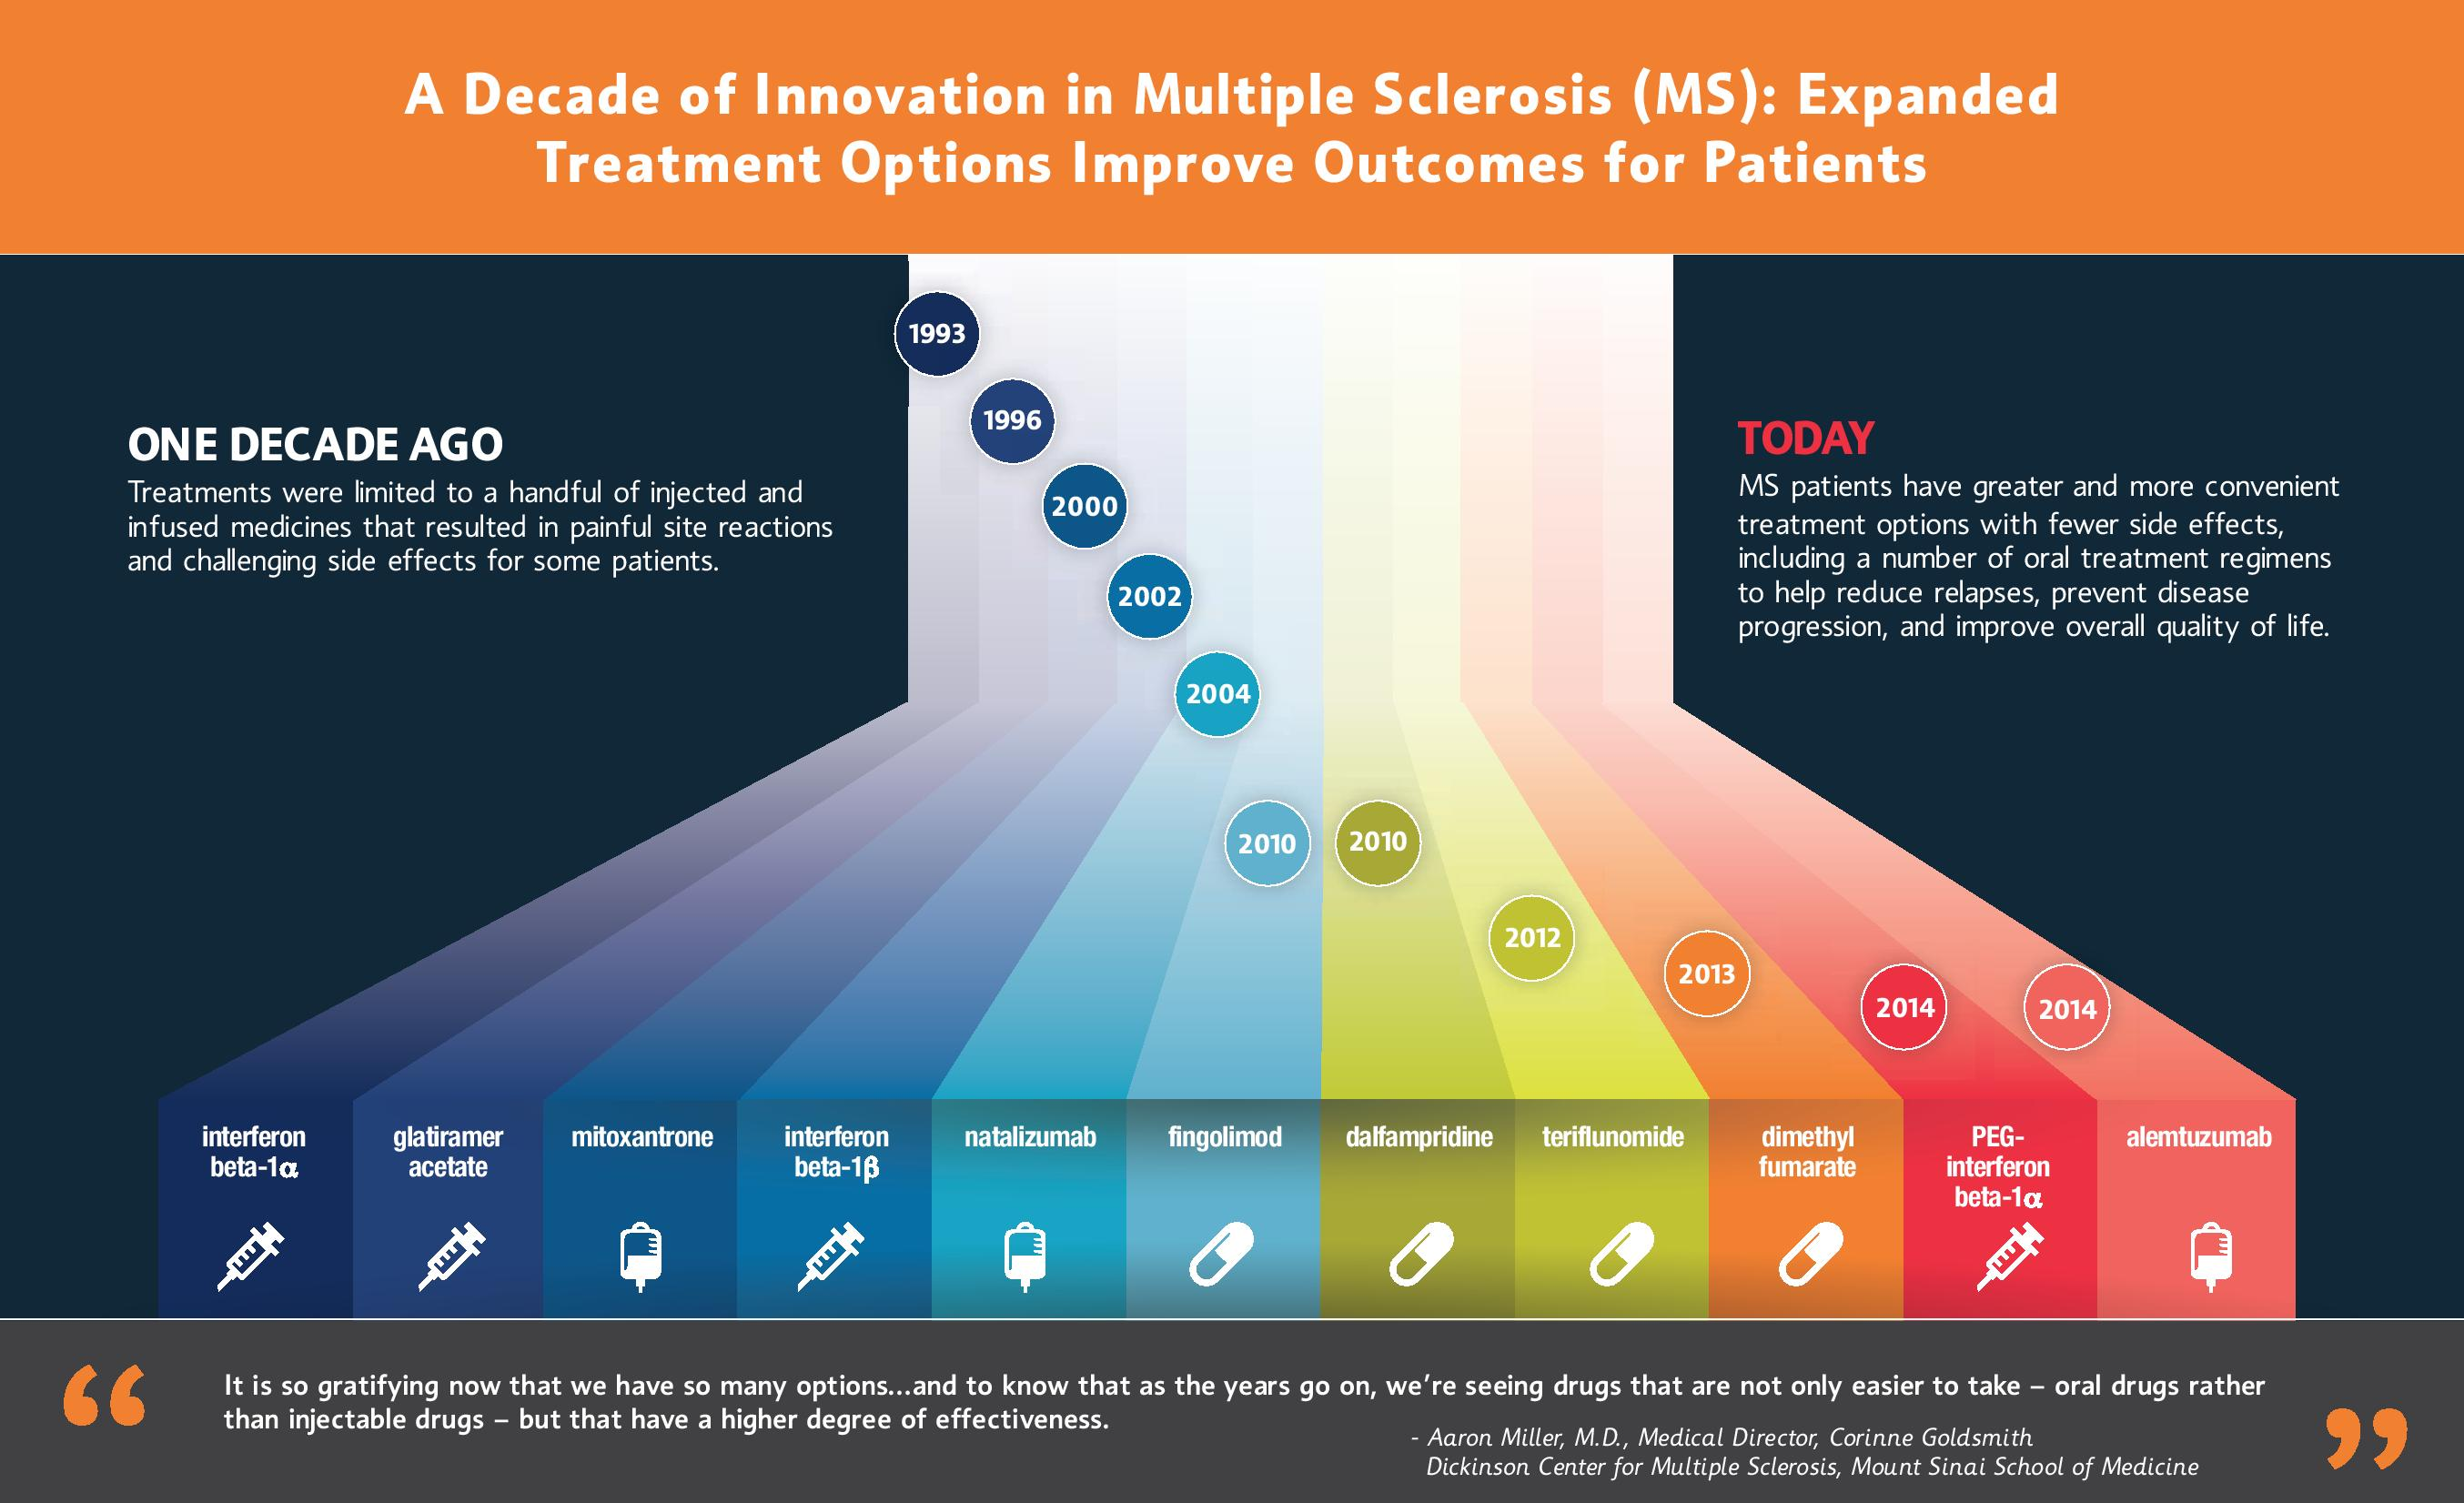 DecadeofInnovation_MSInfographic_22416_FINAL-page-001.jpg